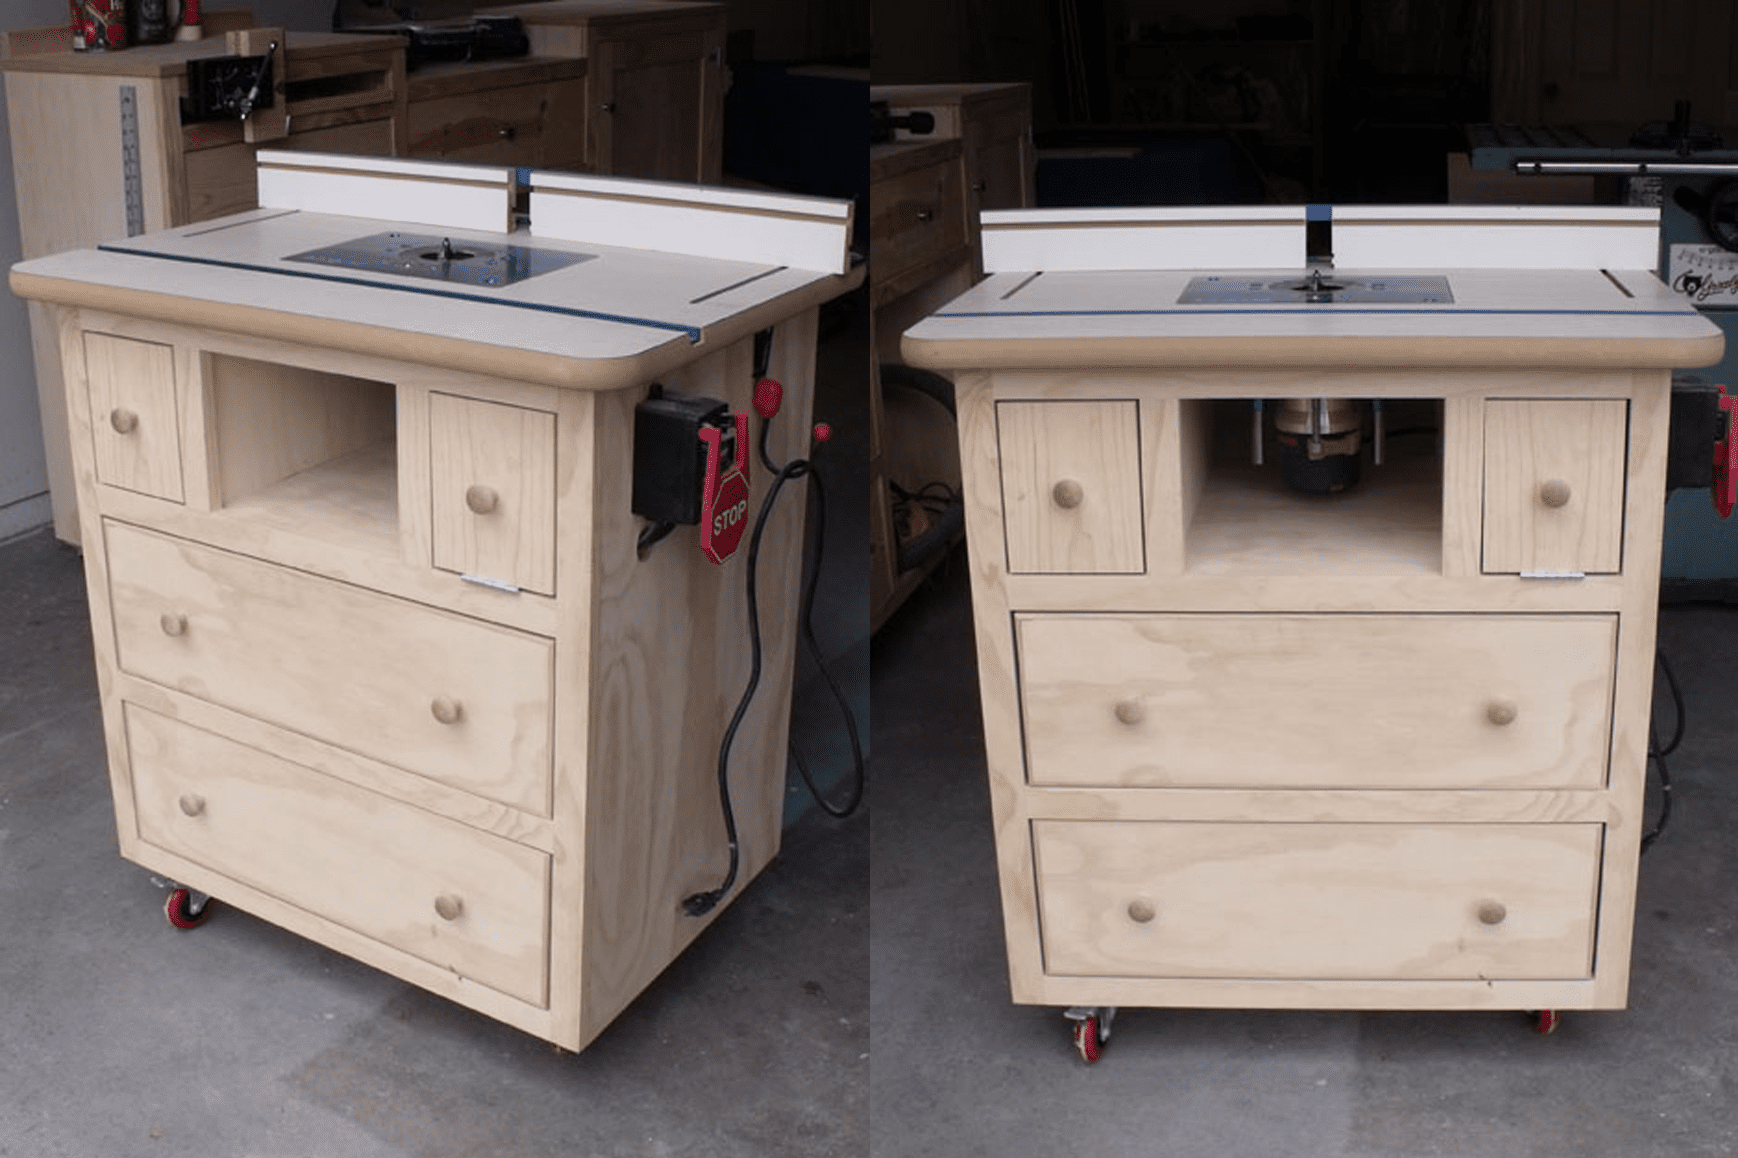 8 free diy router table plans you can use right now for Ana white router table